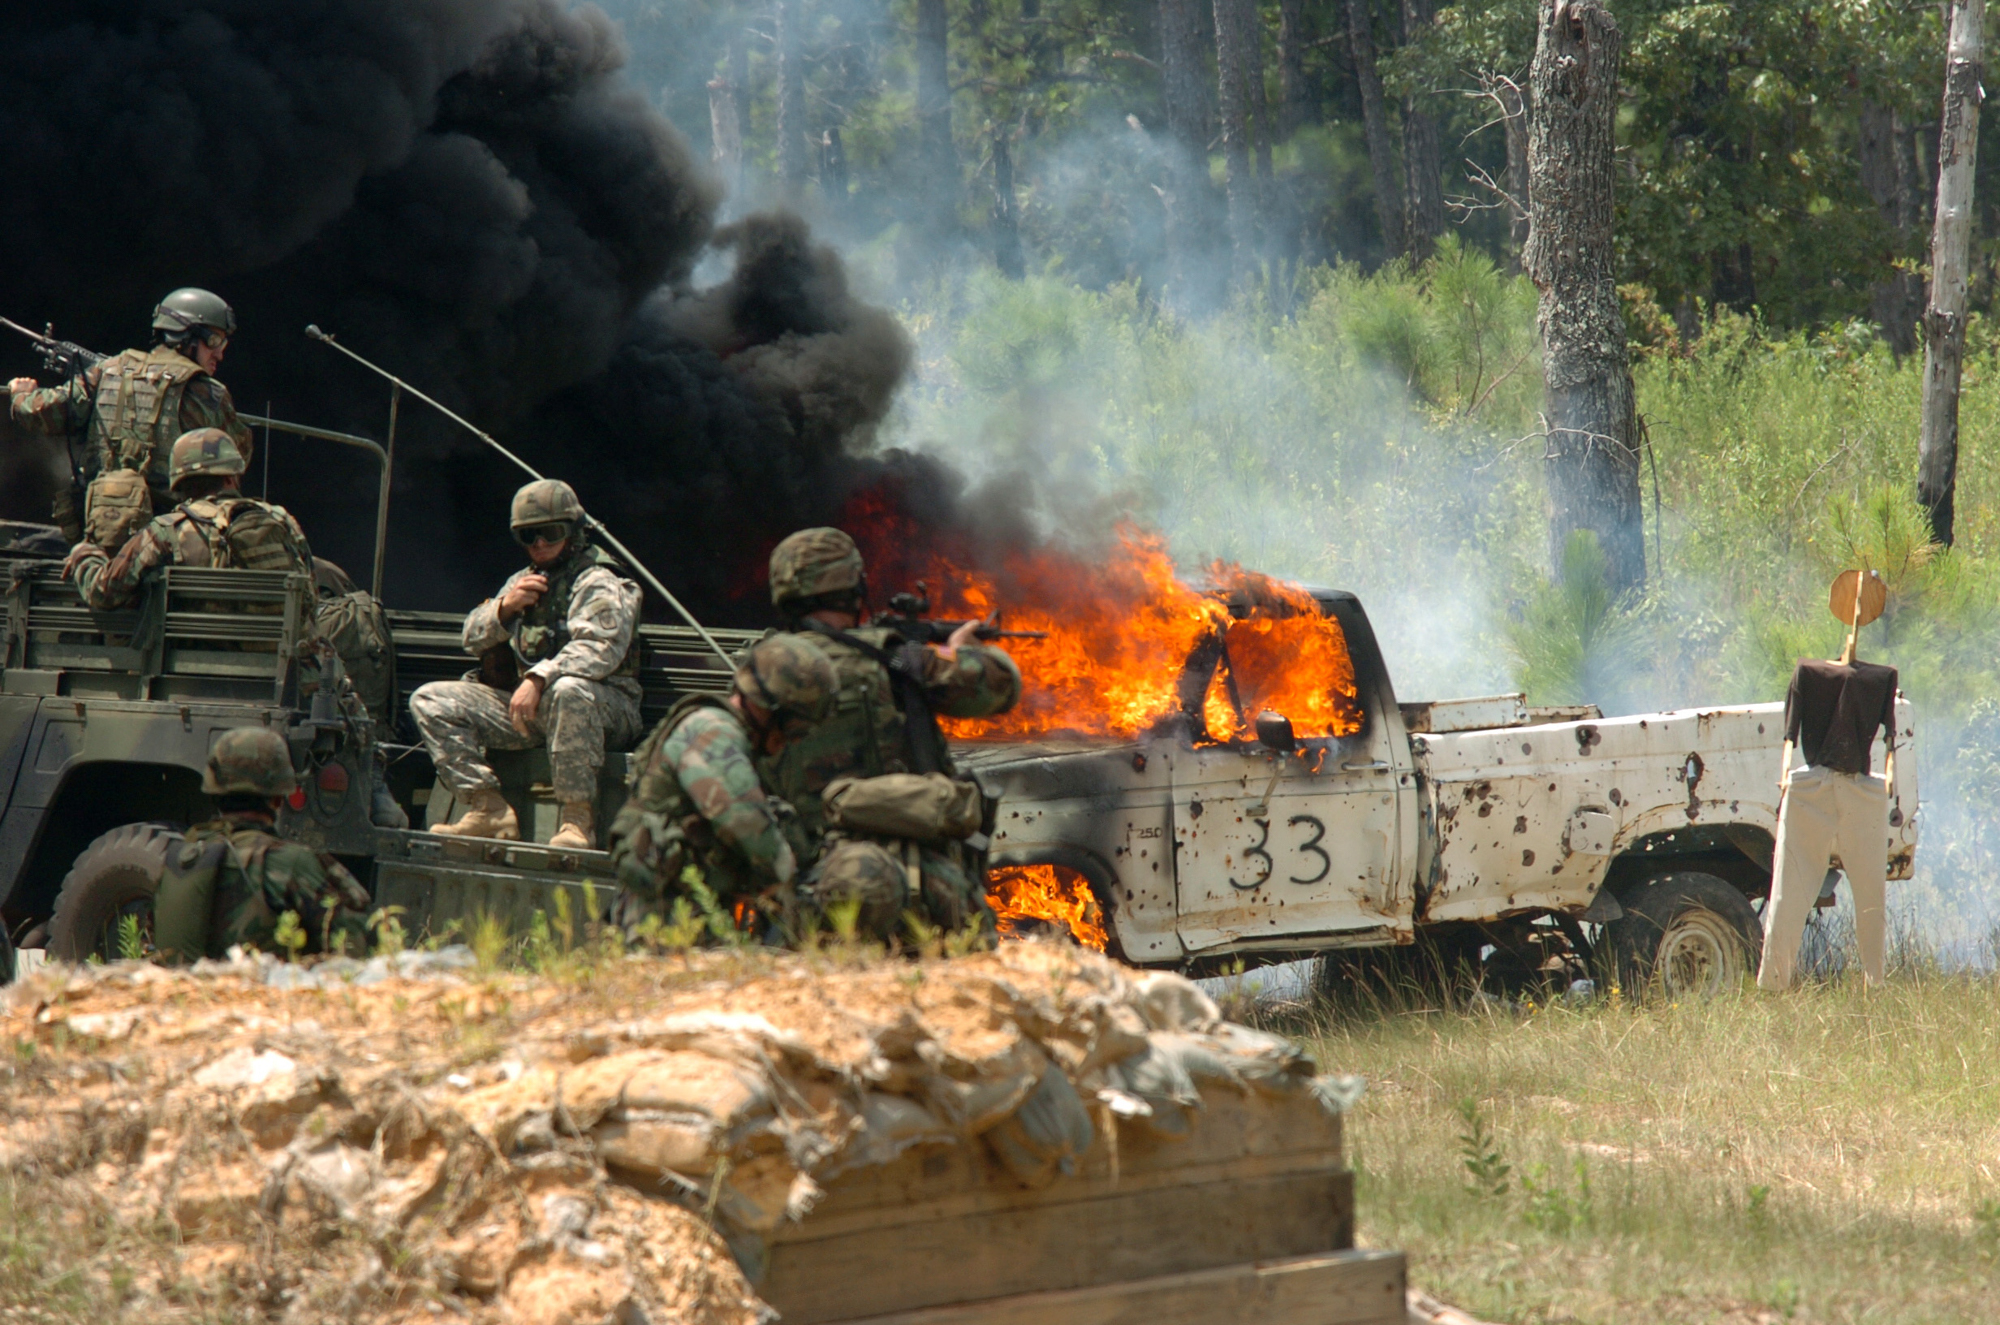 US-ARMY-TRAINING-JRTC-09.jpg